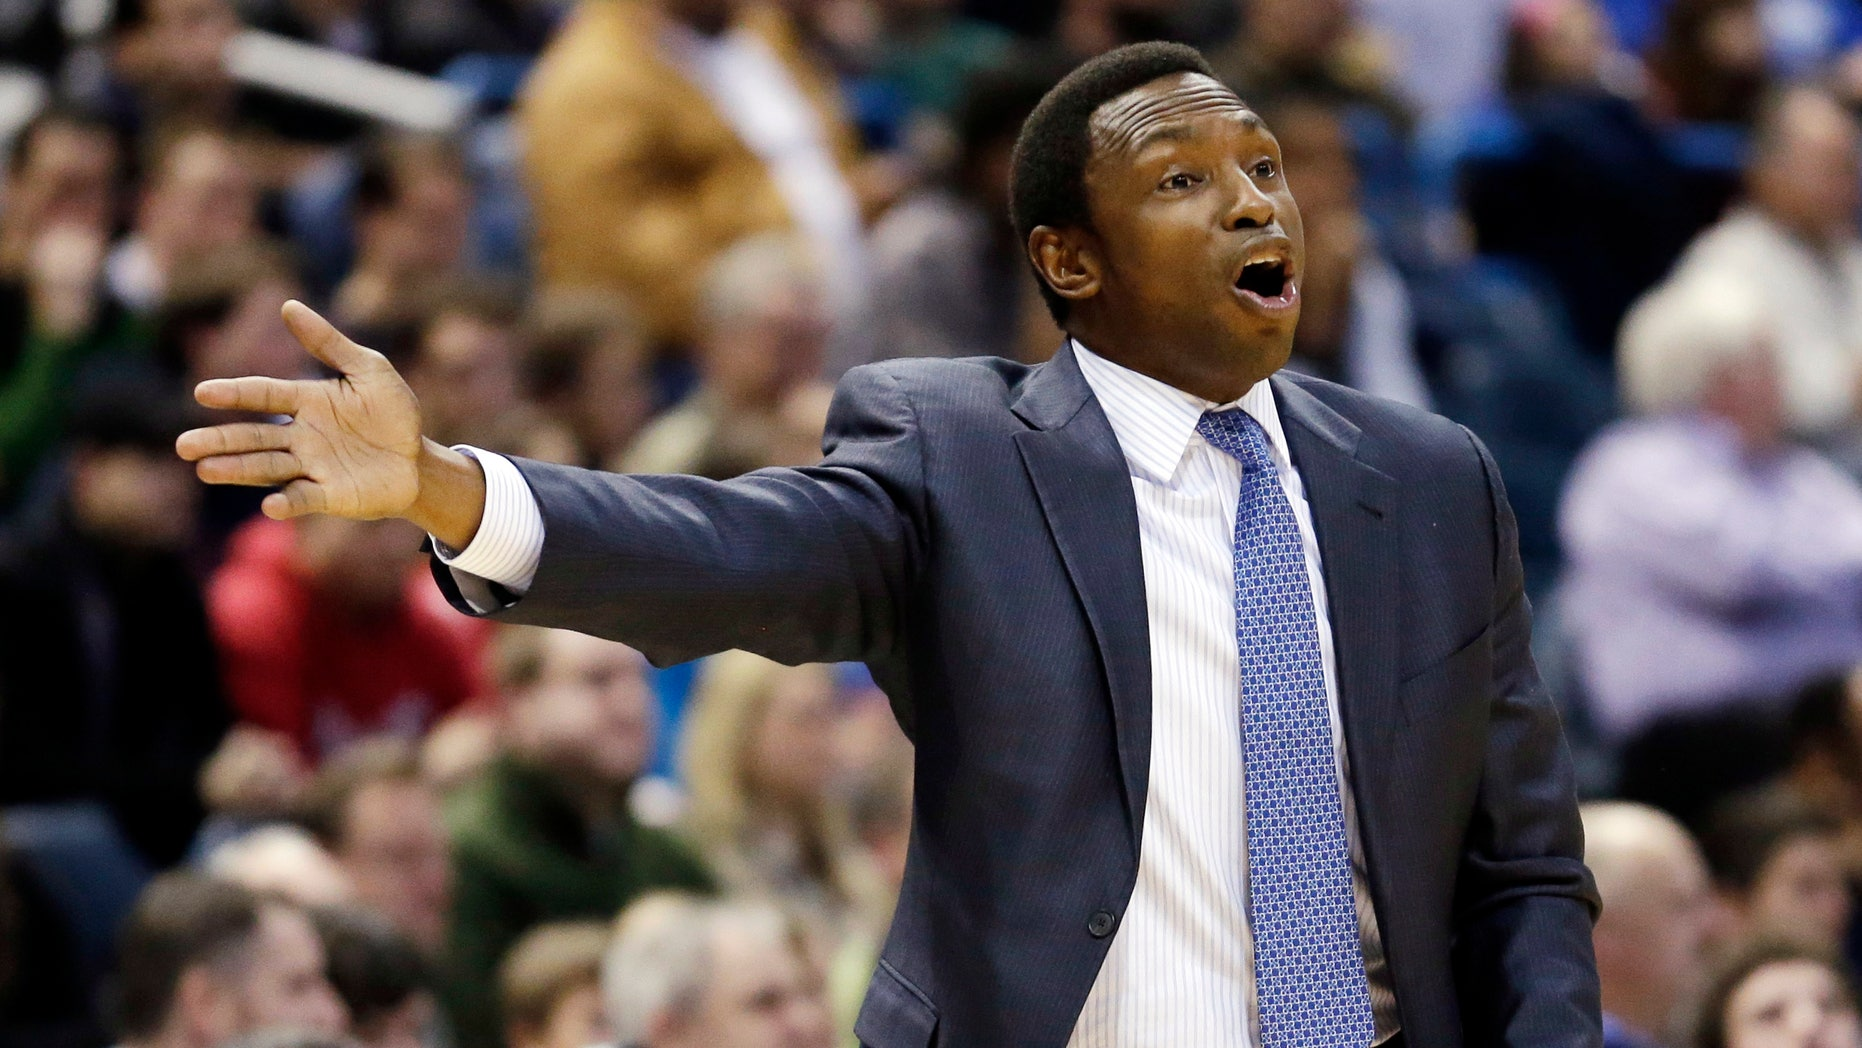 Brooklyn Nets head coach Avery Johnson reacts to a call during the first half of an NBA basketball game against the Milwaukee Bucks, Wednesday, Dec. 26, 2012, in Milwaukee. (AP Photo/Morry Gash)